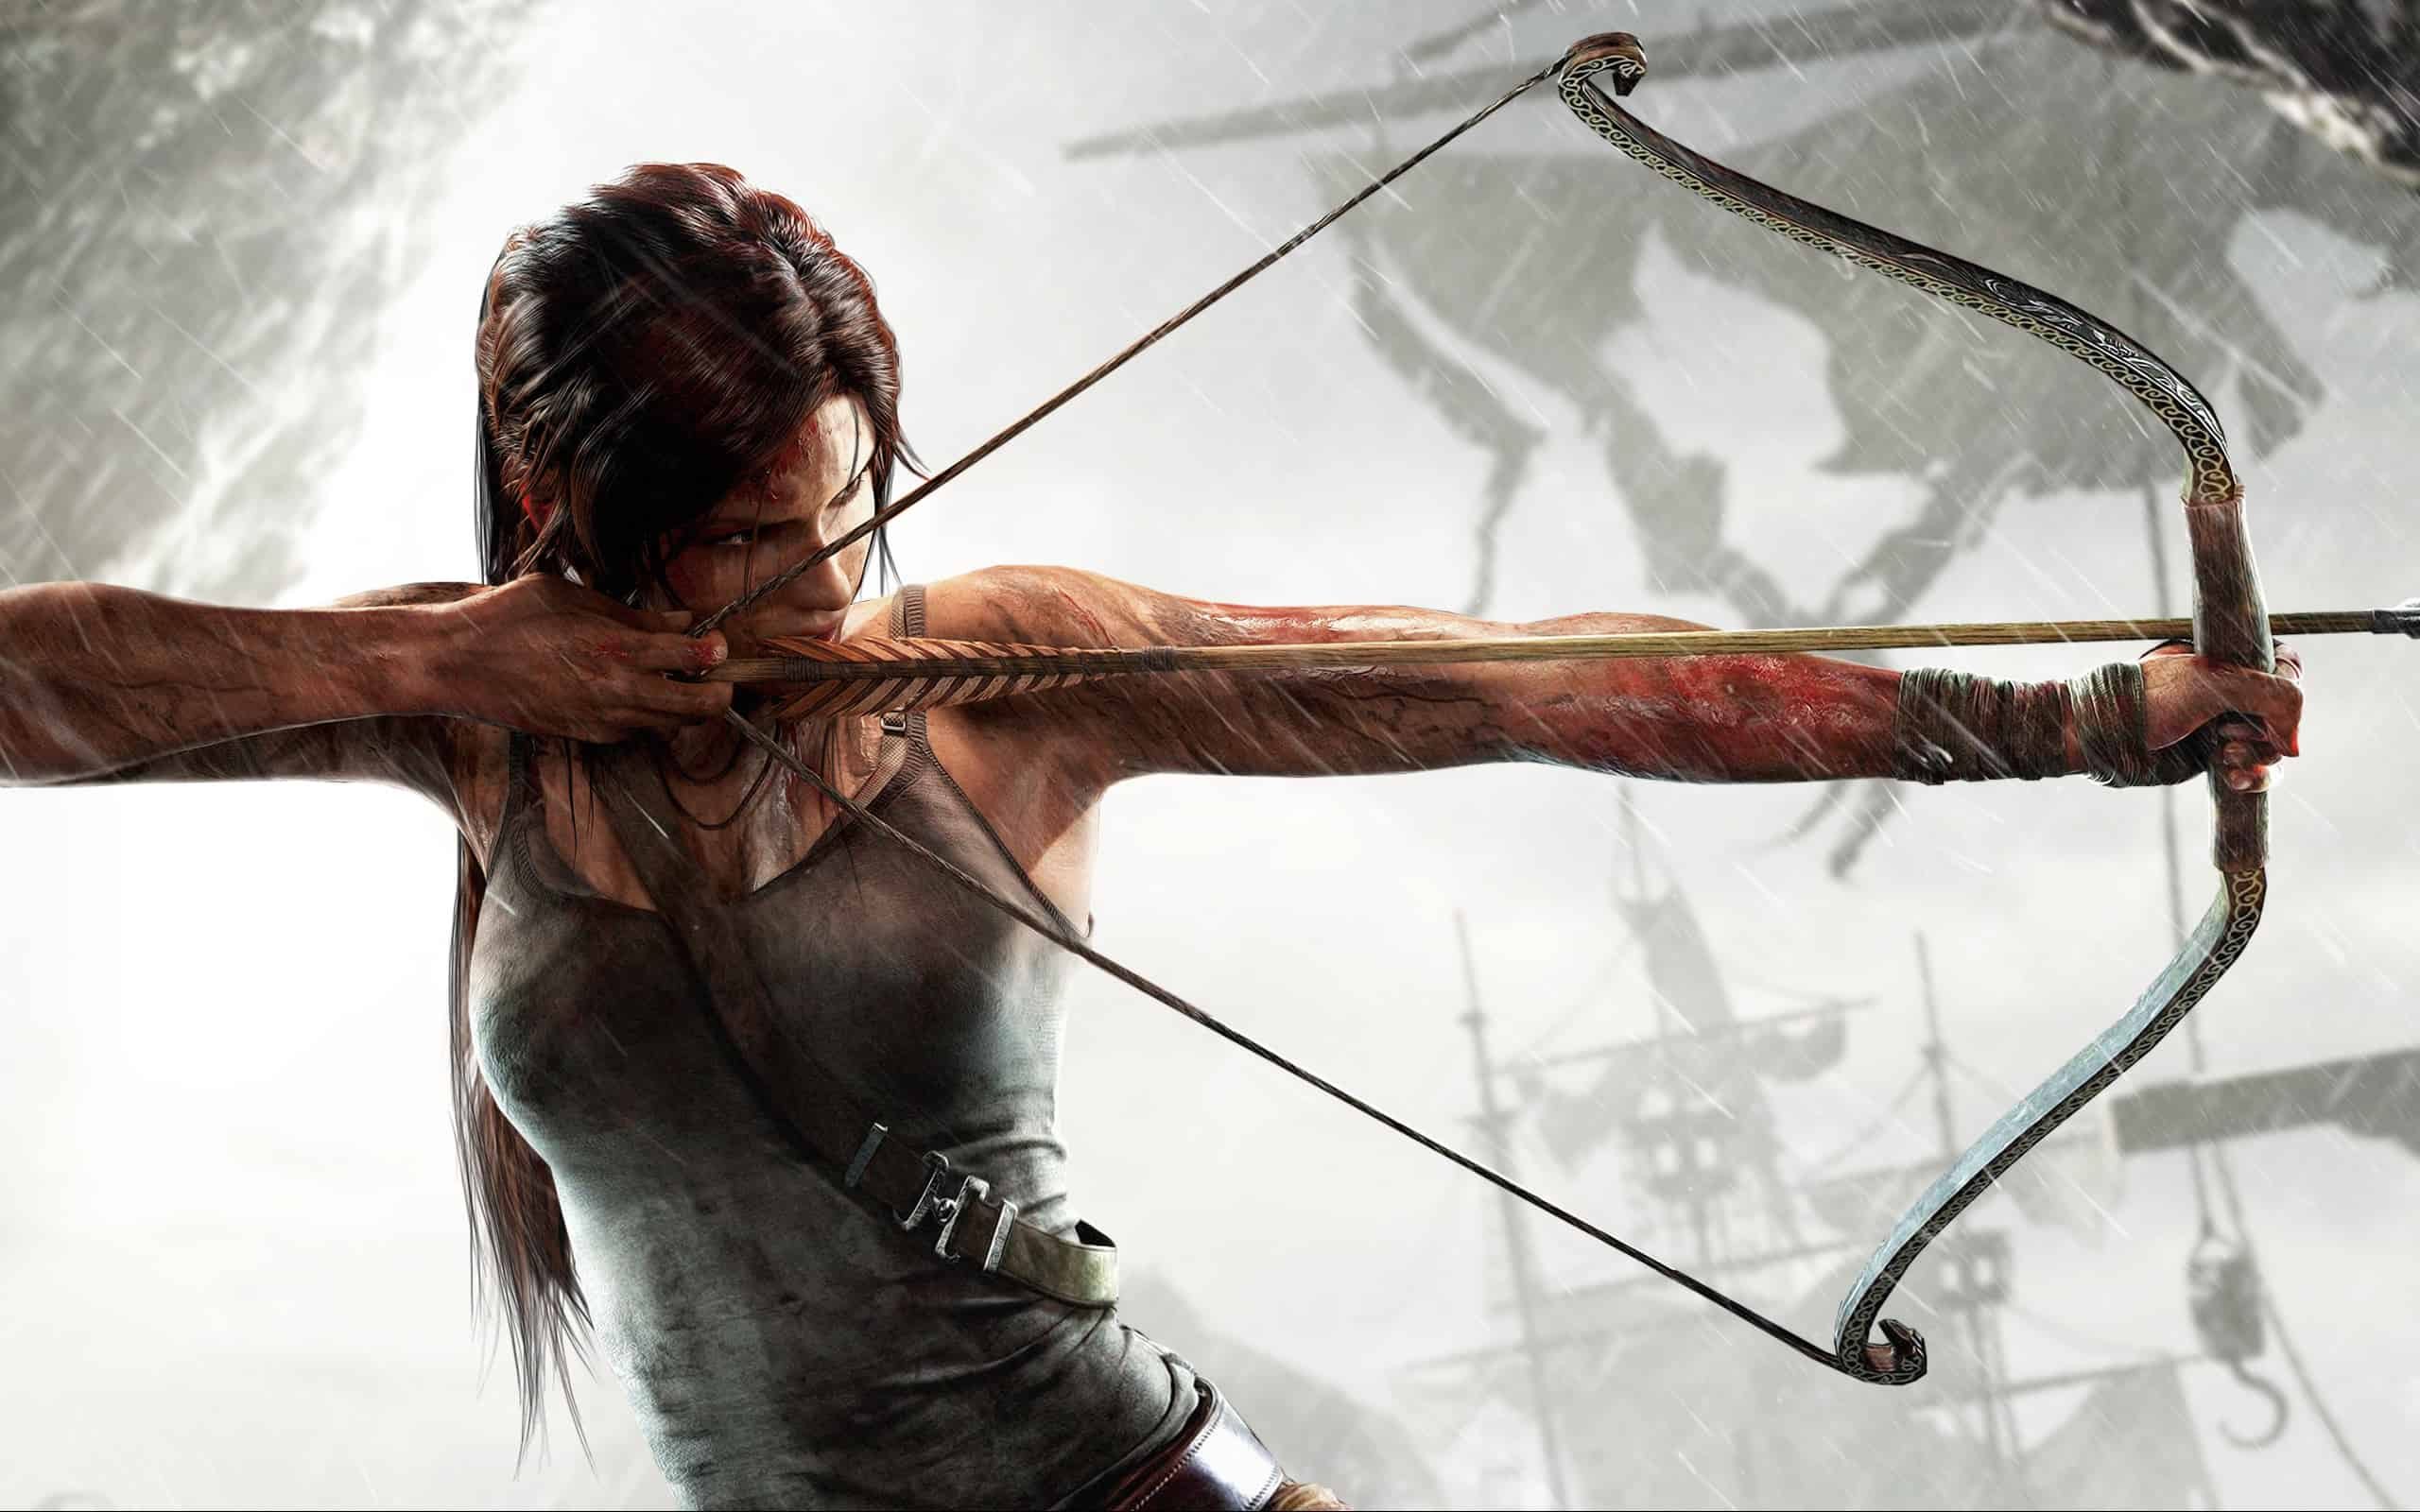 tomb_raider_2013_art-wide